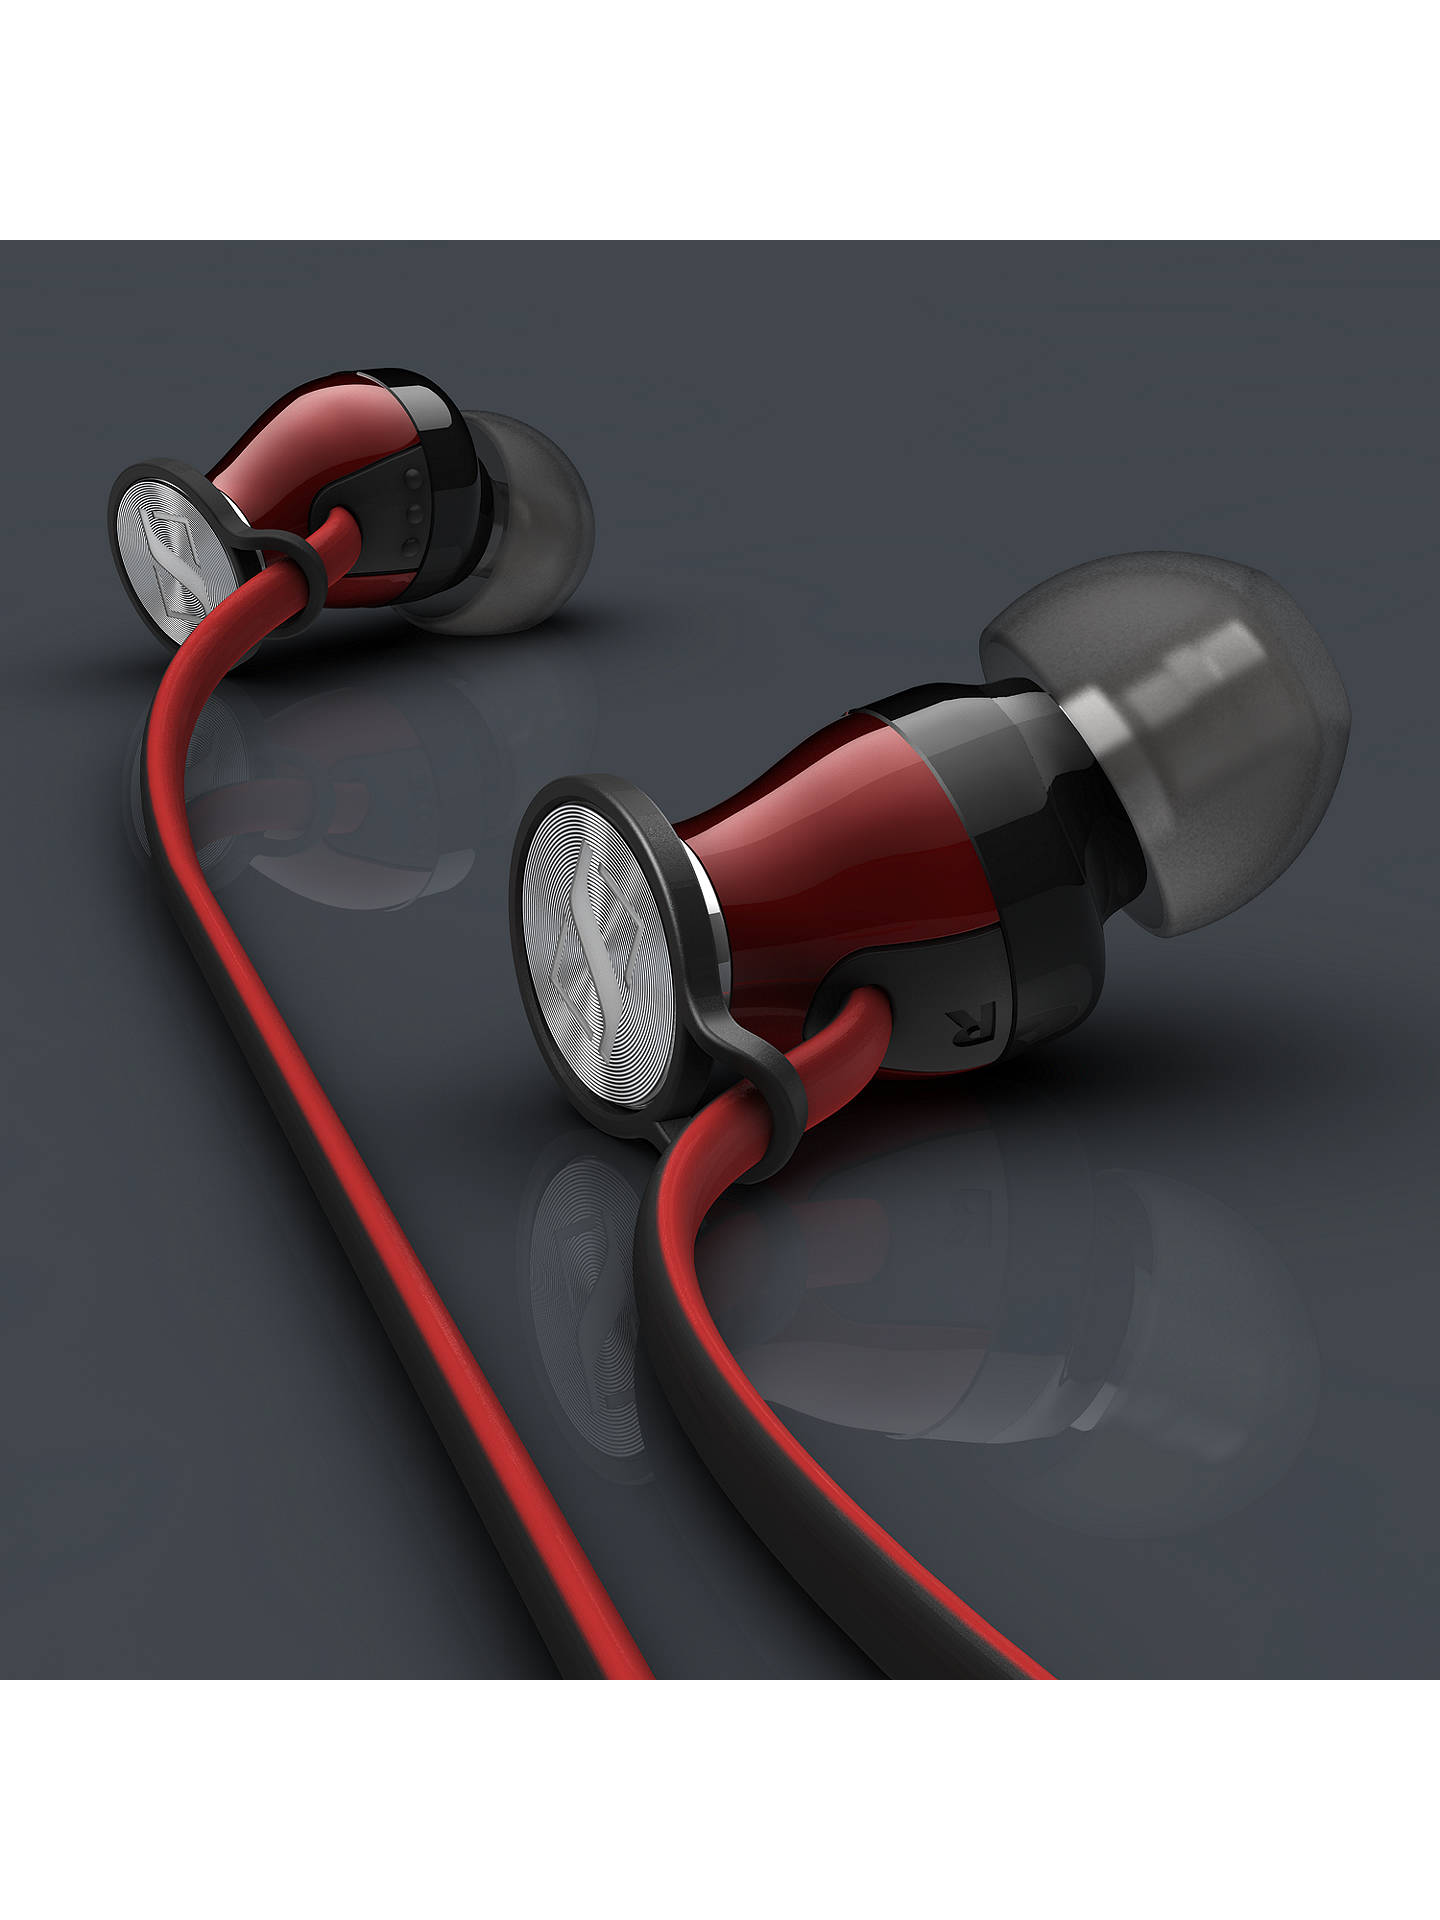 BuySennheiser MOMENTUM I In-Ear Headphones with Mic/Remote for iOS Devices, Black/Red Online at johnlewis.com